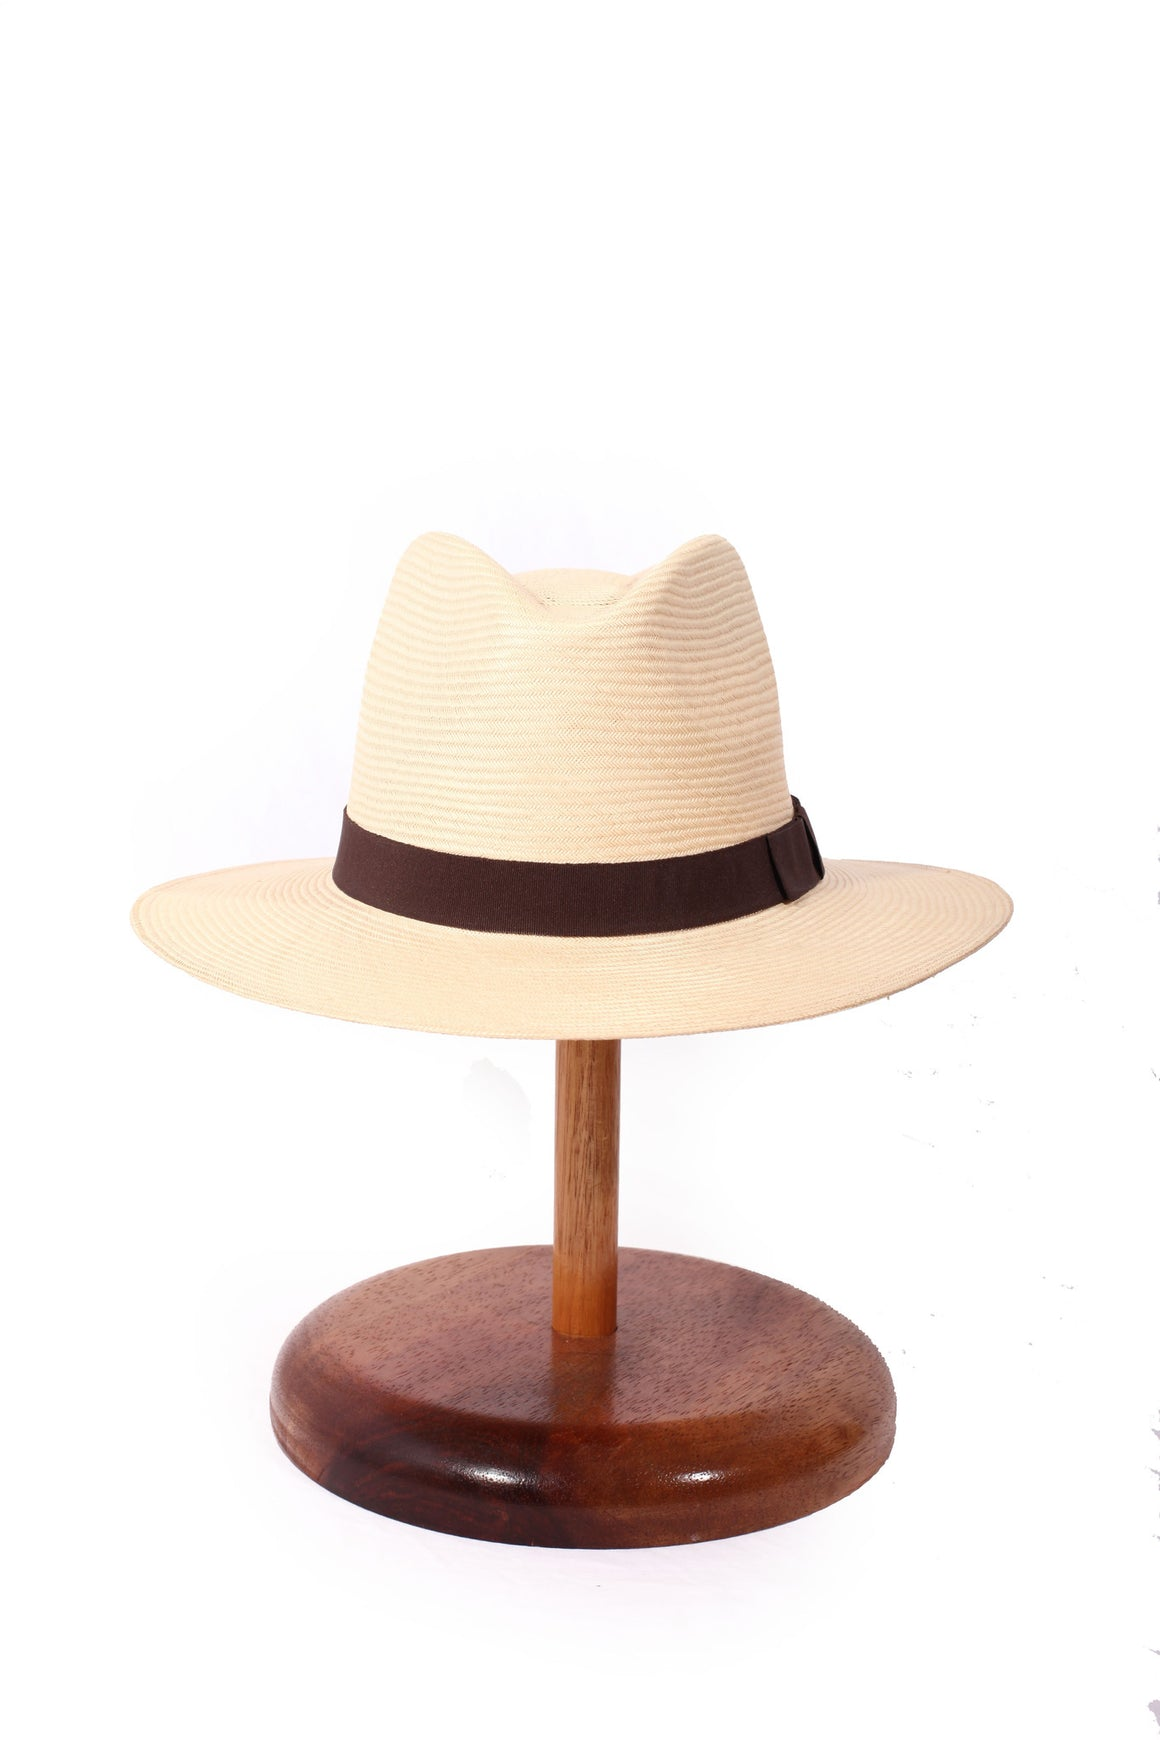 Maya Neumann Panama Style Hat - Brown Ribbon